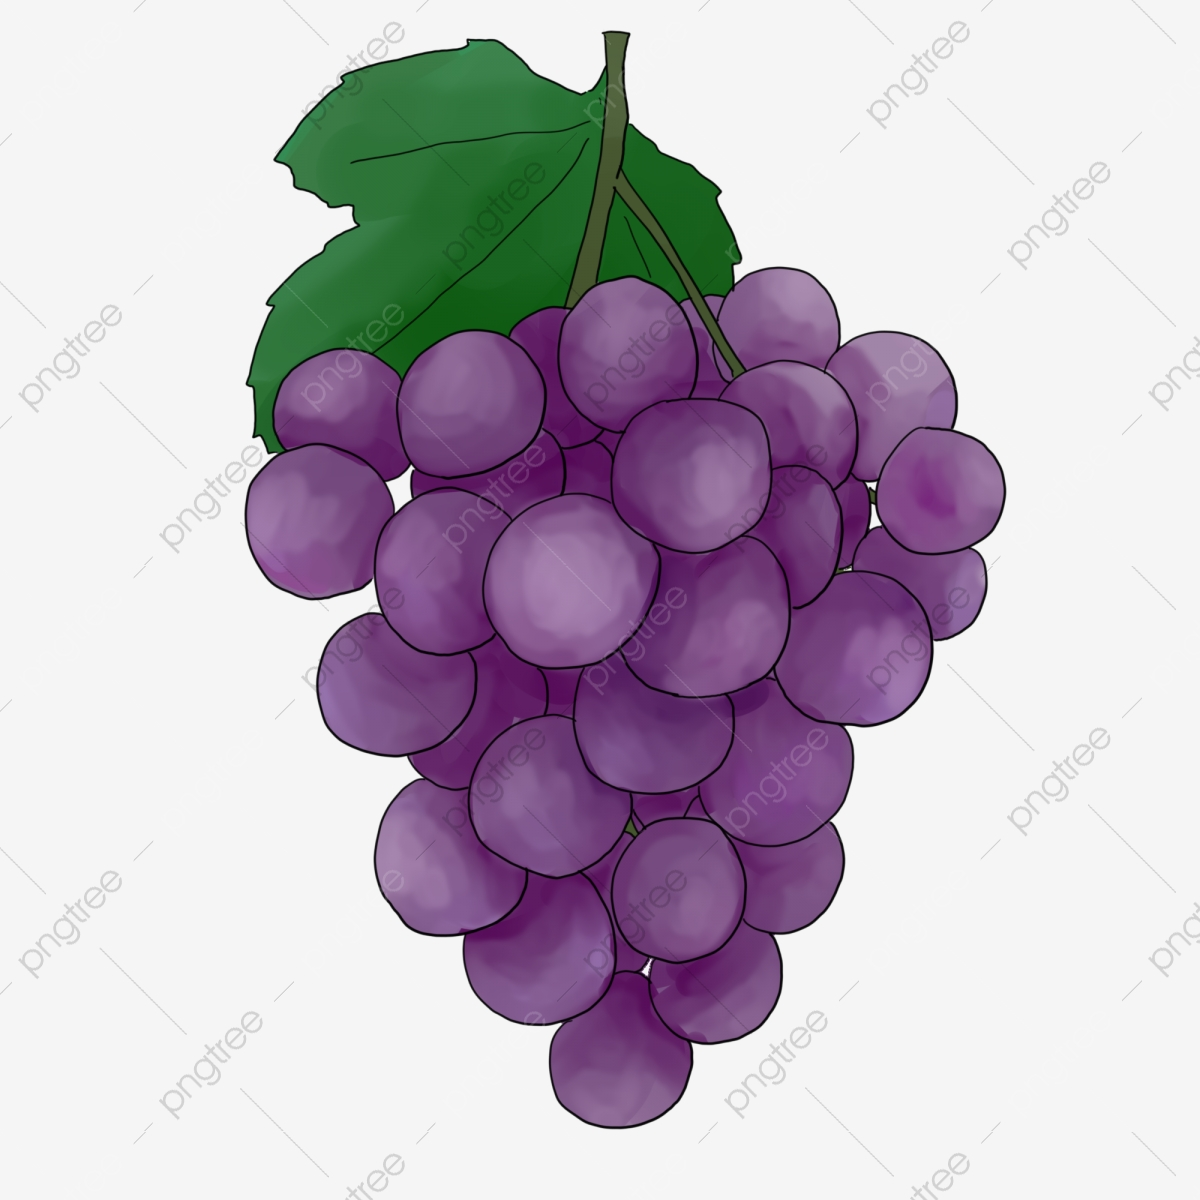 Black Grapes Black Grape Fruit Png Transparent Clipart